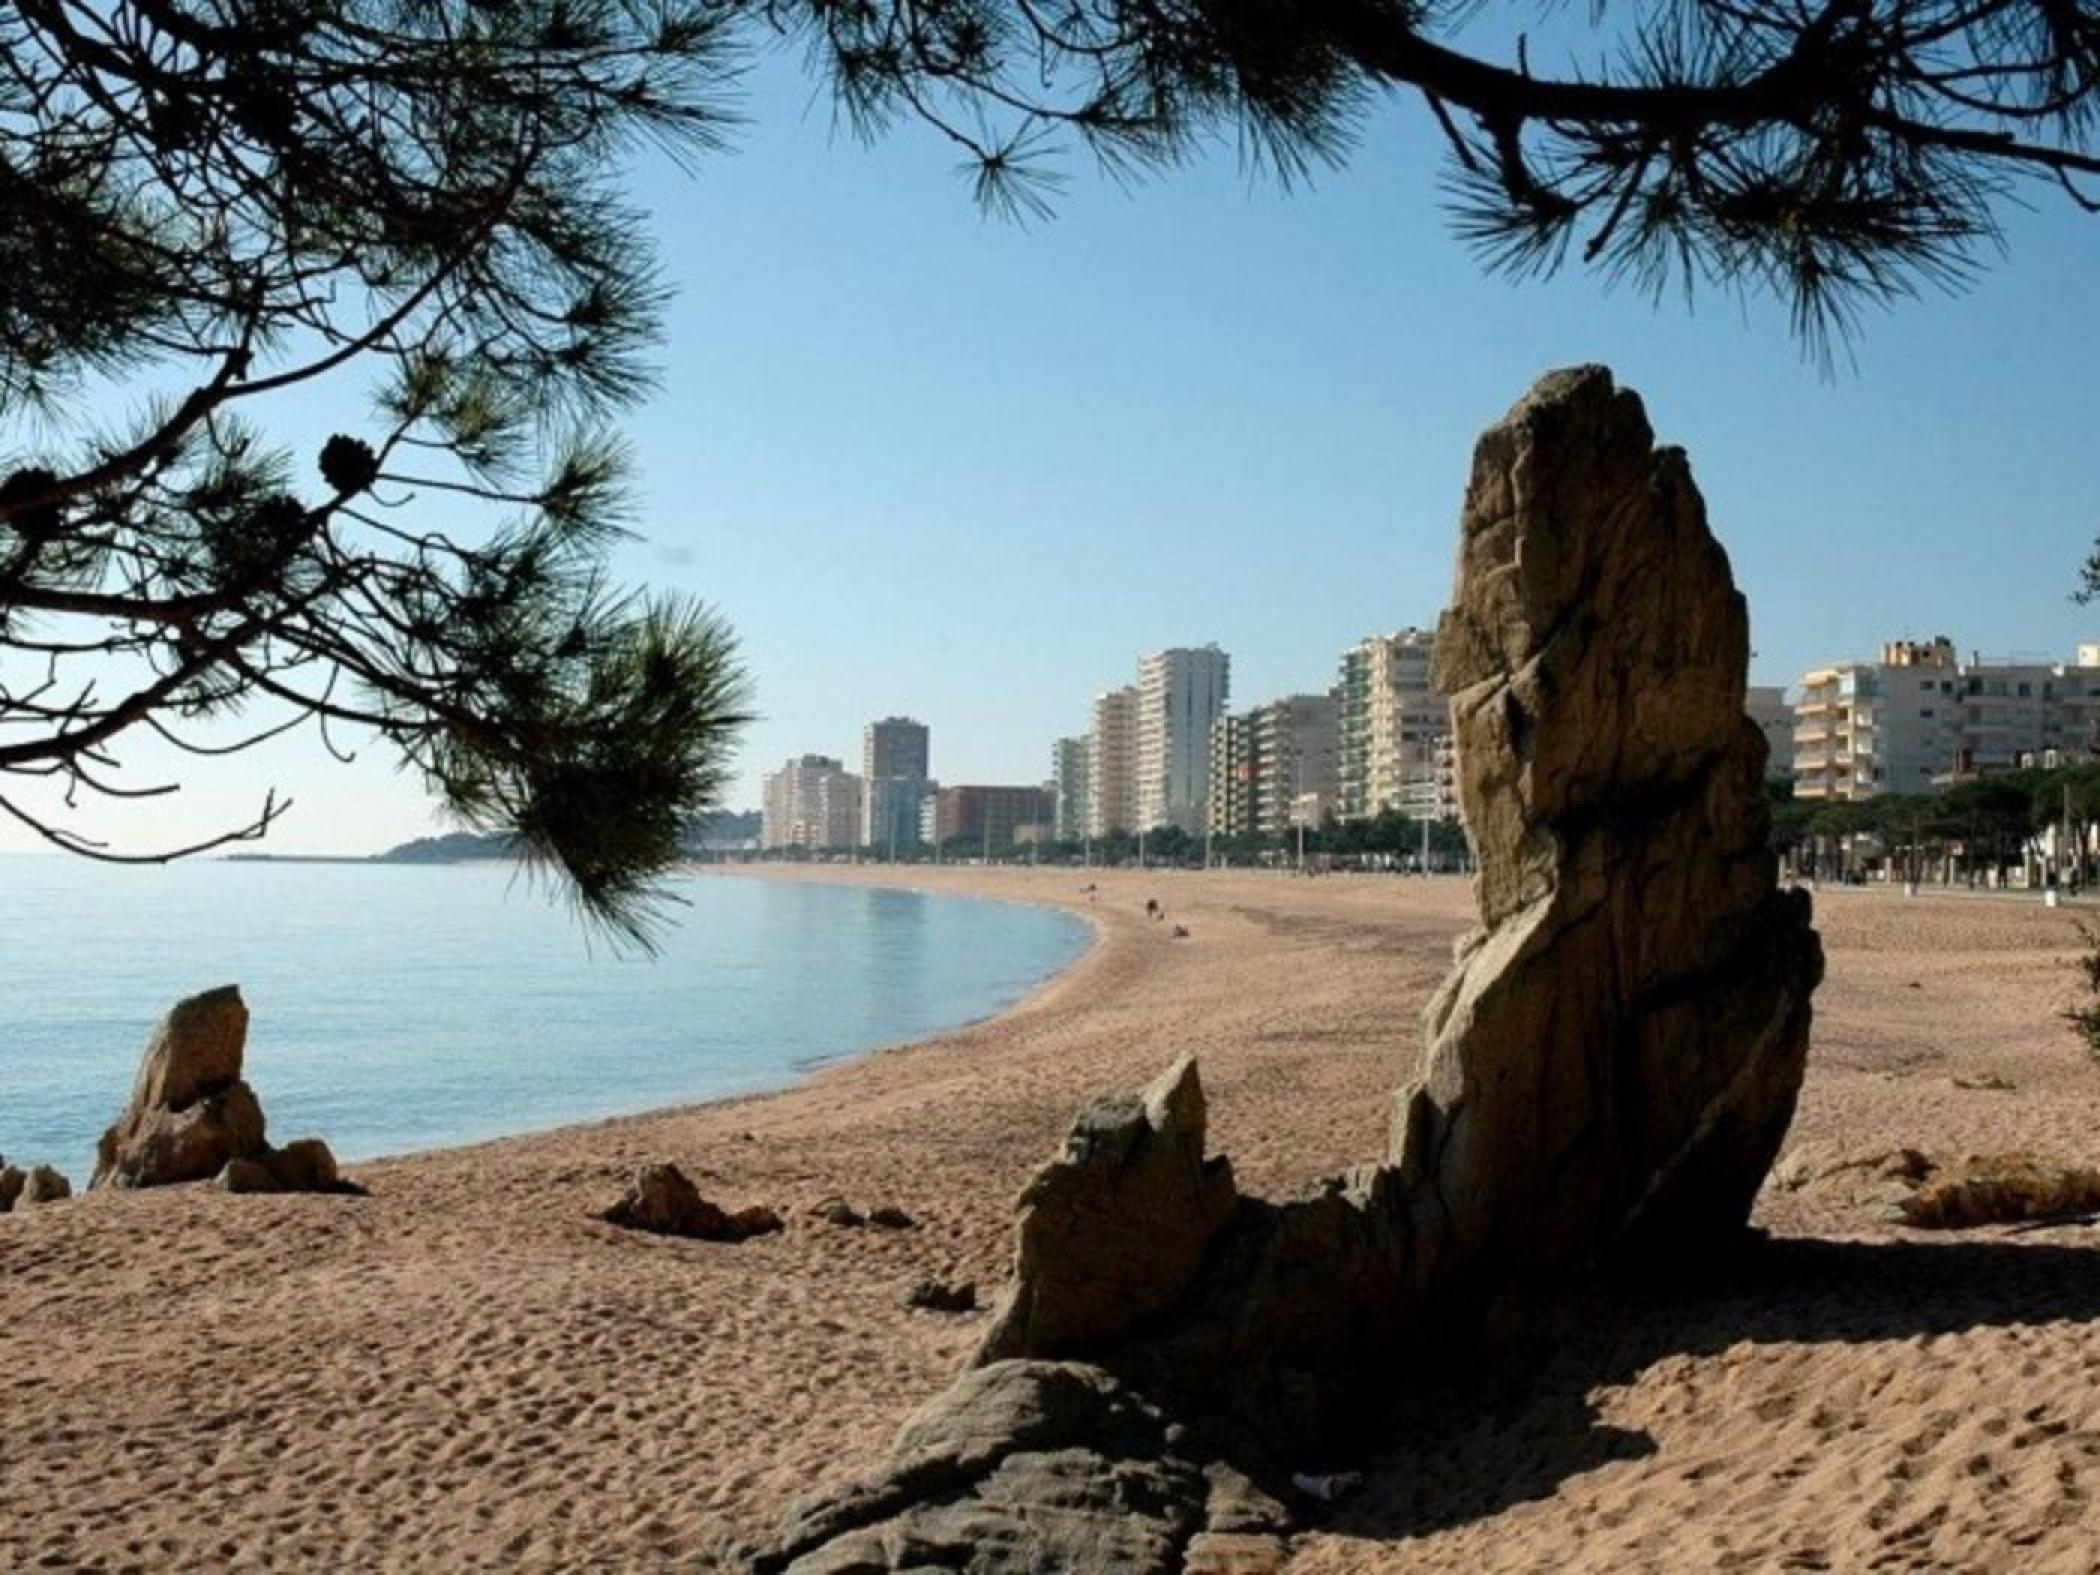 Rent Apartment in Platja d'Aro - Ground floor in front of the sea Ridaura BX4 - 31